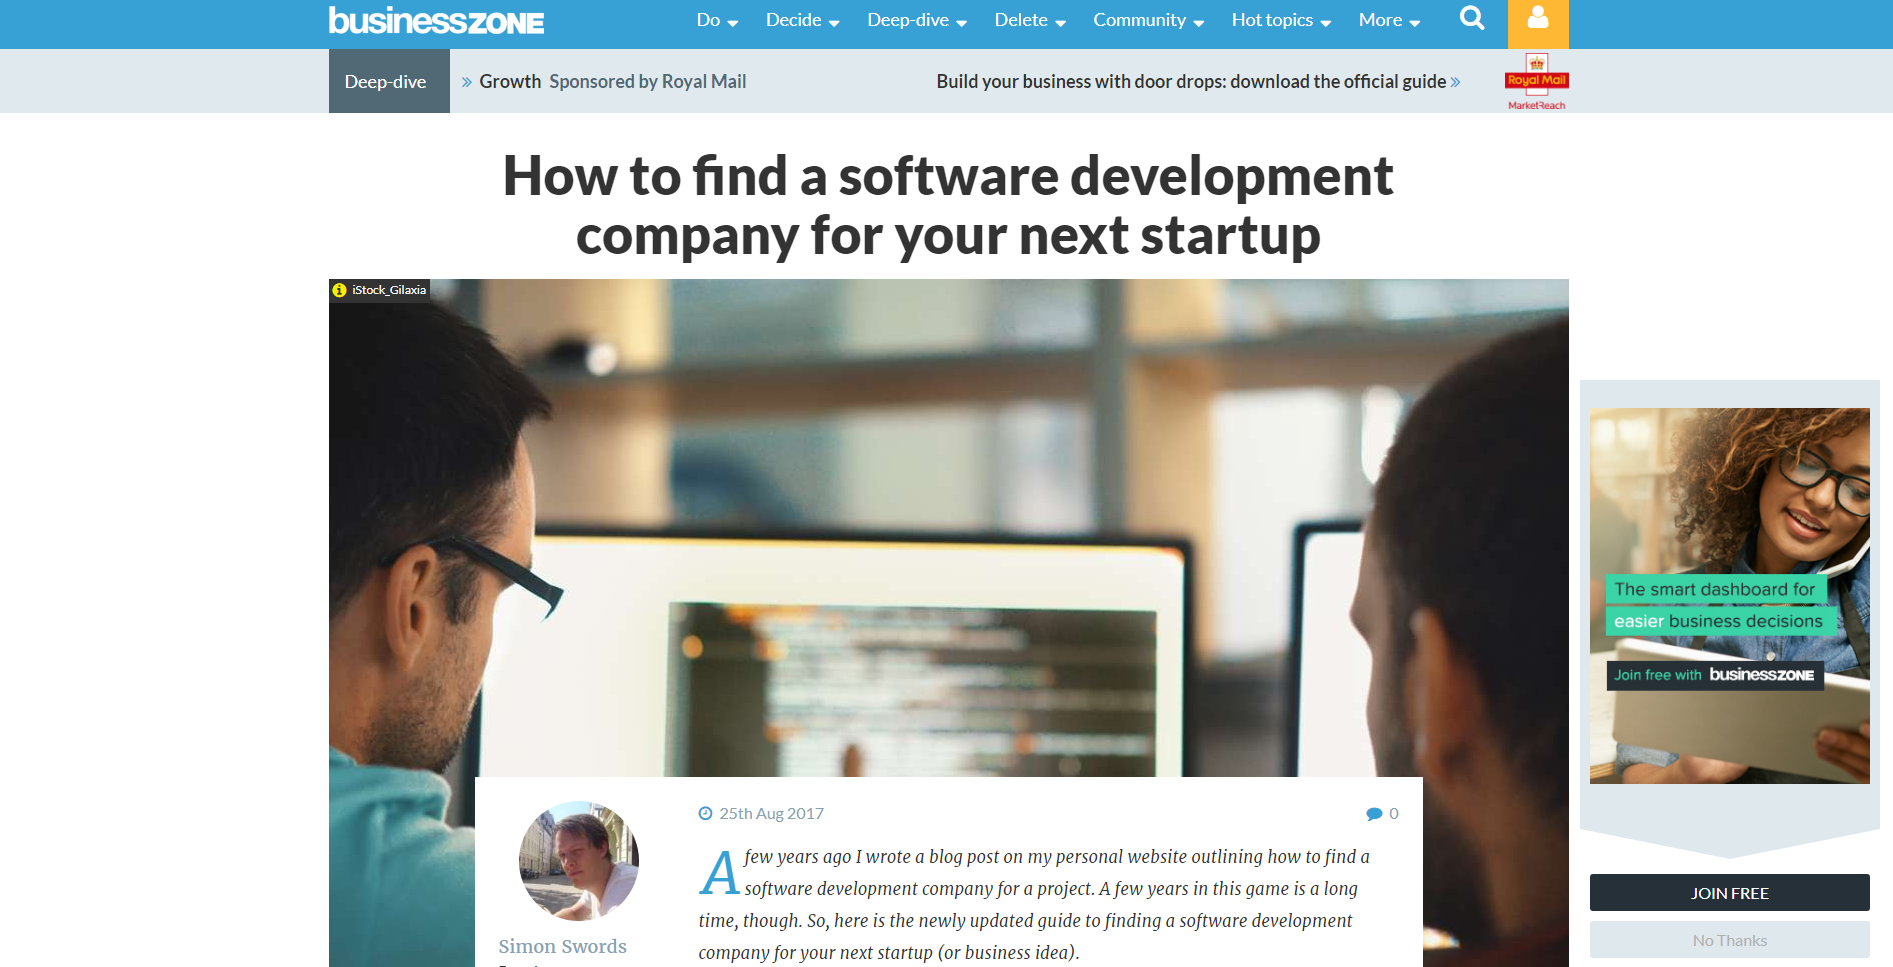 BusinessZone Article - How to find a software development company for your next startup